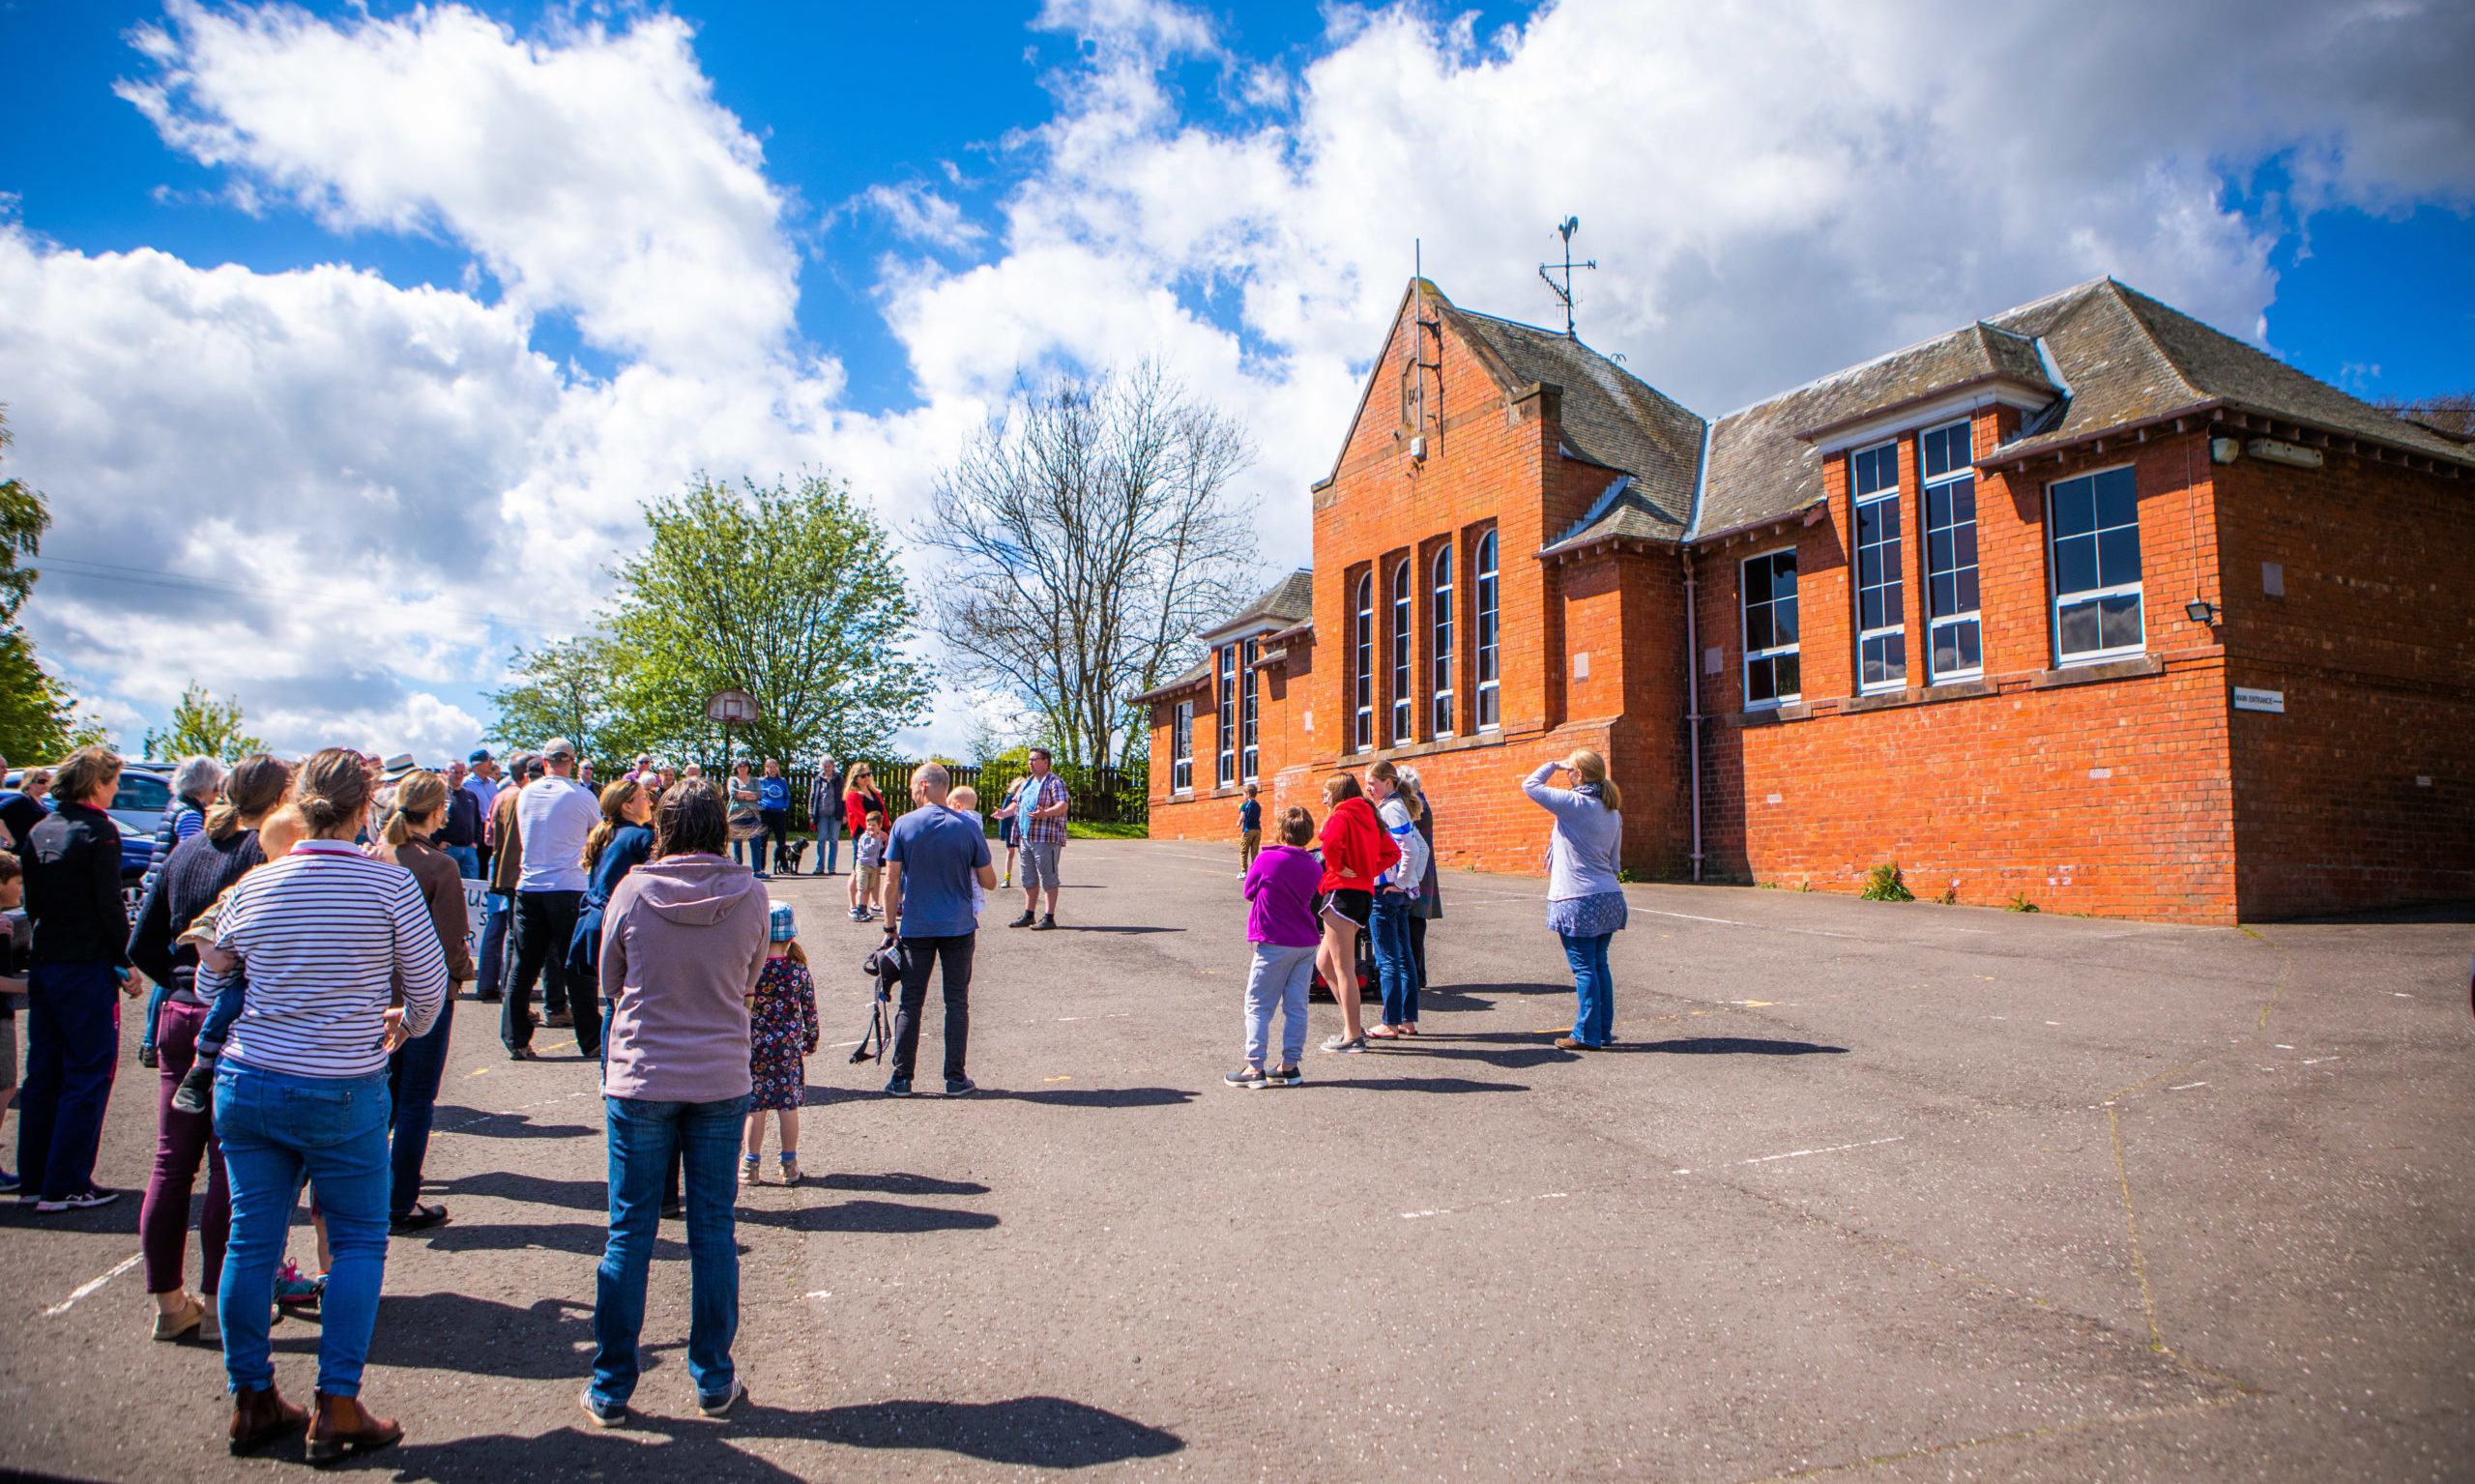 Abernyte Primary had been scheduled to close when this summer.